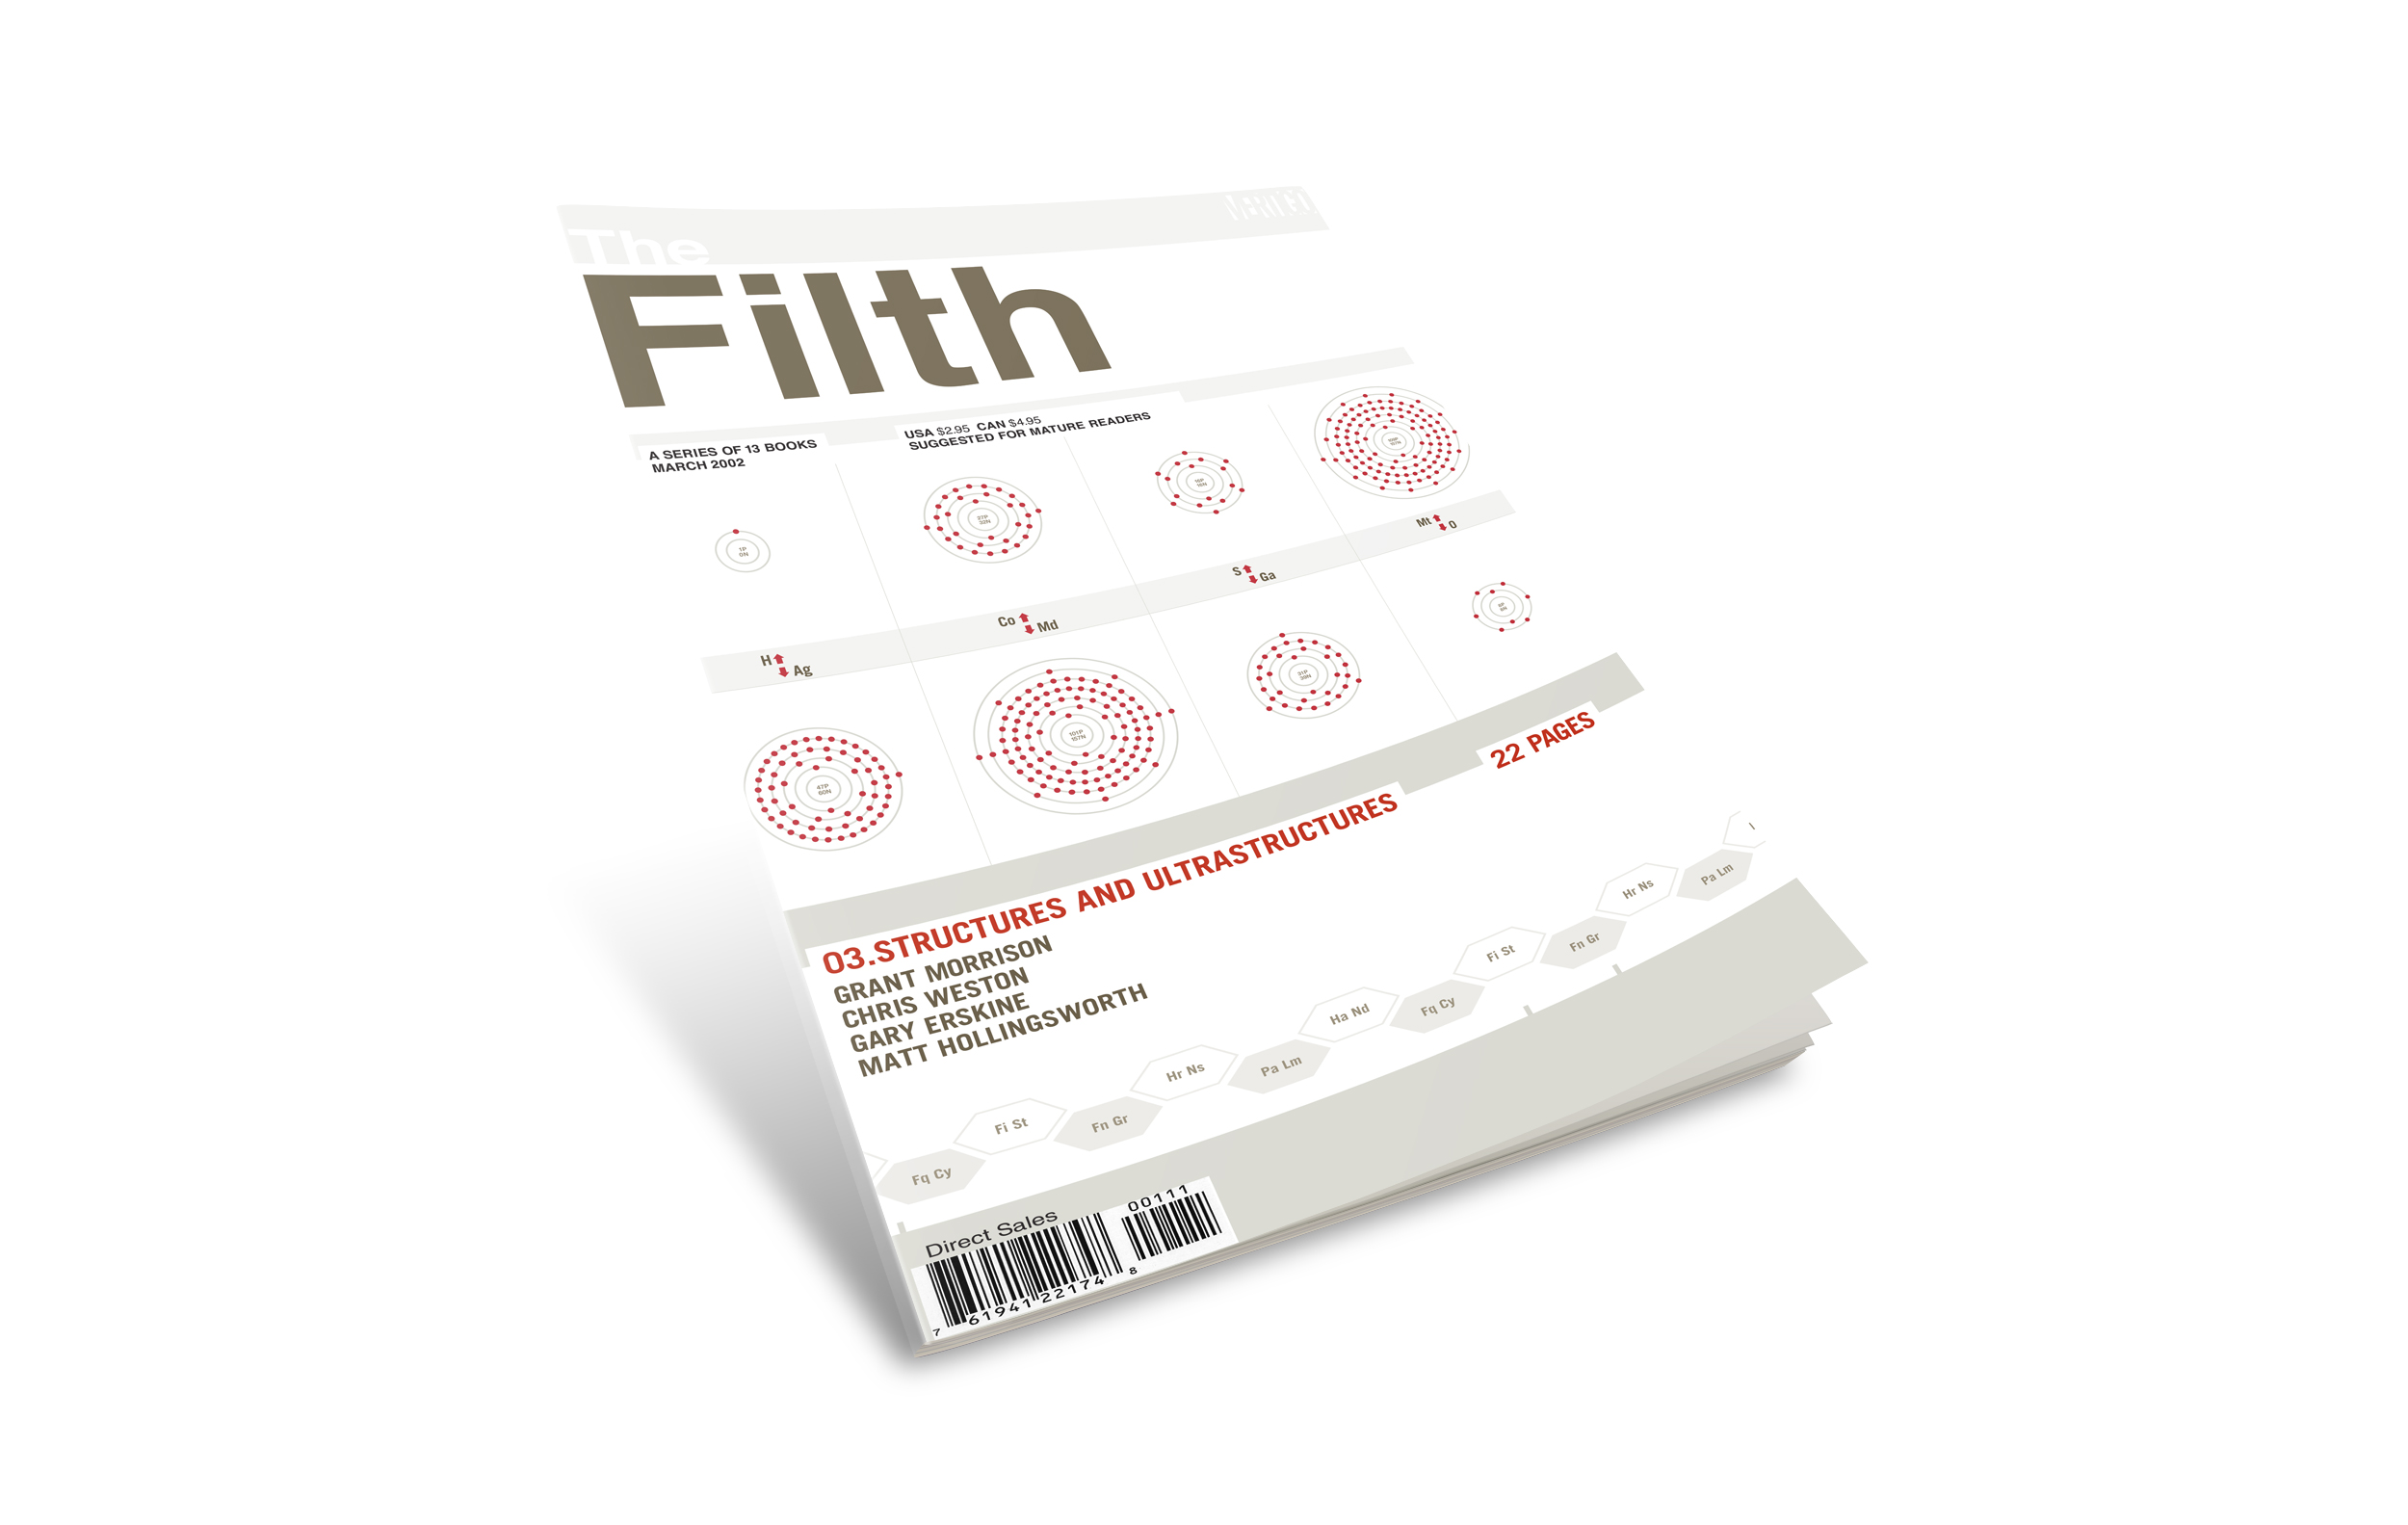 """Filth comic book cover #3. """"Structures and Ultrastructures""""."""